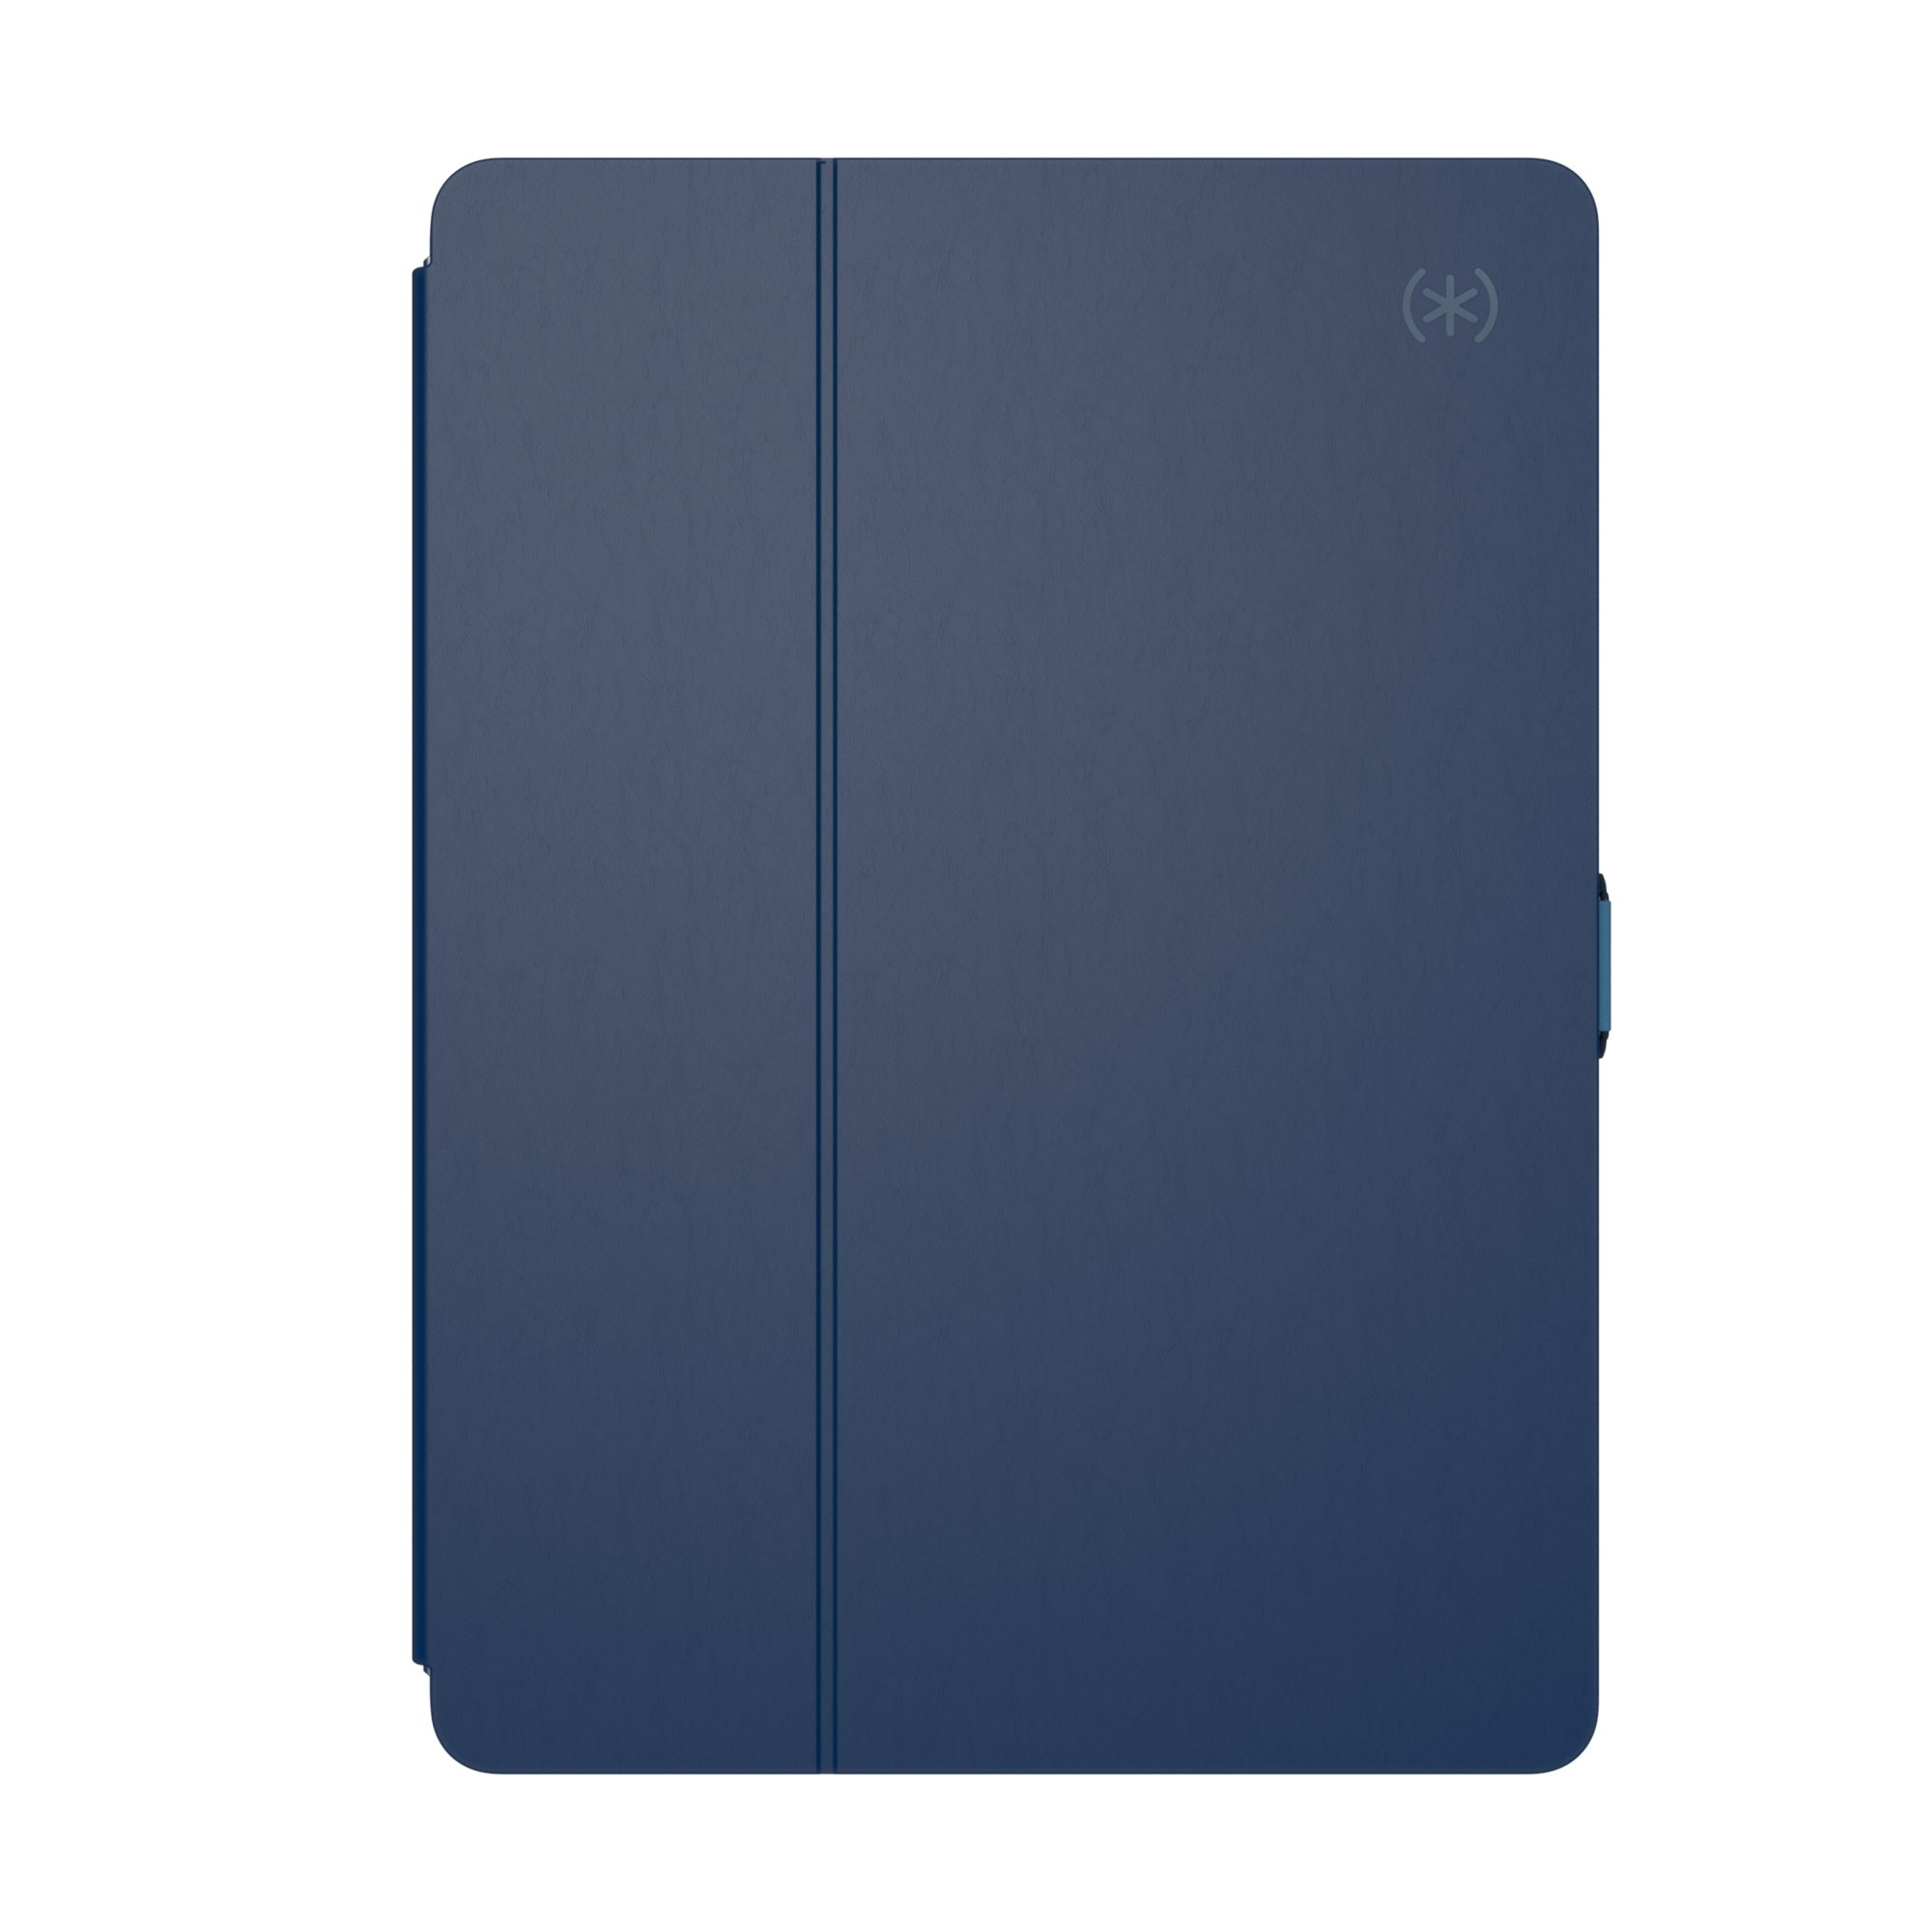 Speck Products 90915-5633 Balance FOLIO Case and Stand for 12.9'' iPad (2017) with Magnets, Marine Blue/Twilight Blue